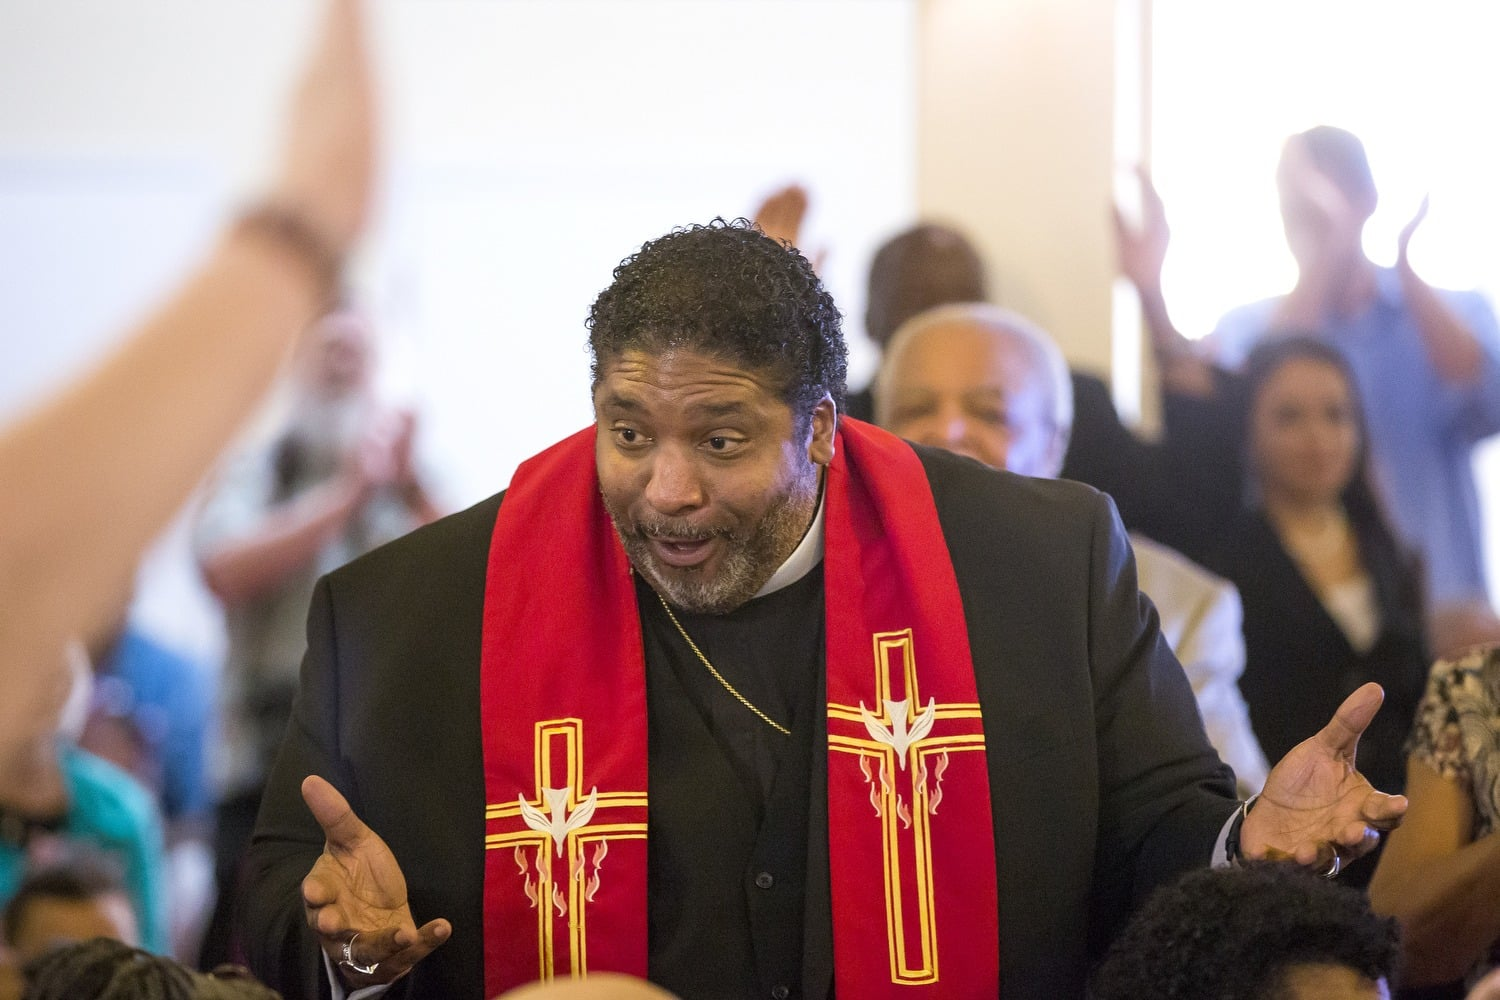 The Rev. William J. Barber II addresses his supporters before discussing his plans to step down as president of the North Carolina NAACP during a press conference at the Davie Street Presbyterian Church on May 15.